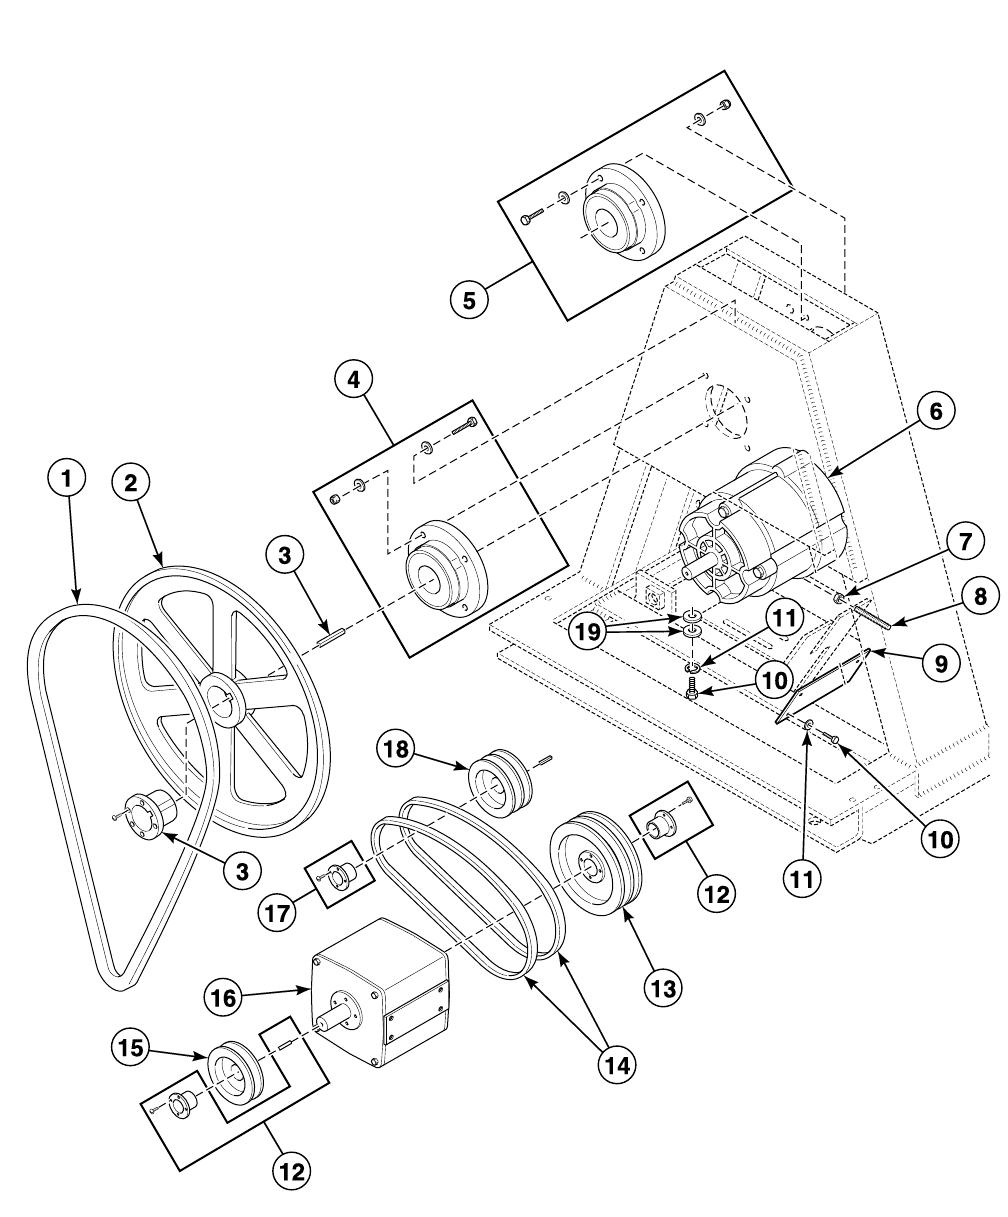 Washer Extractor Parts Manual Uw60m2 F232149 F430 Can Bus Diagram 72